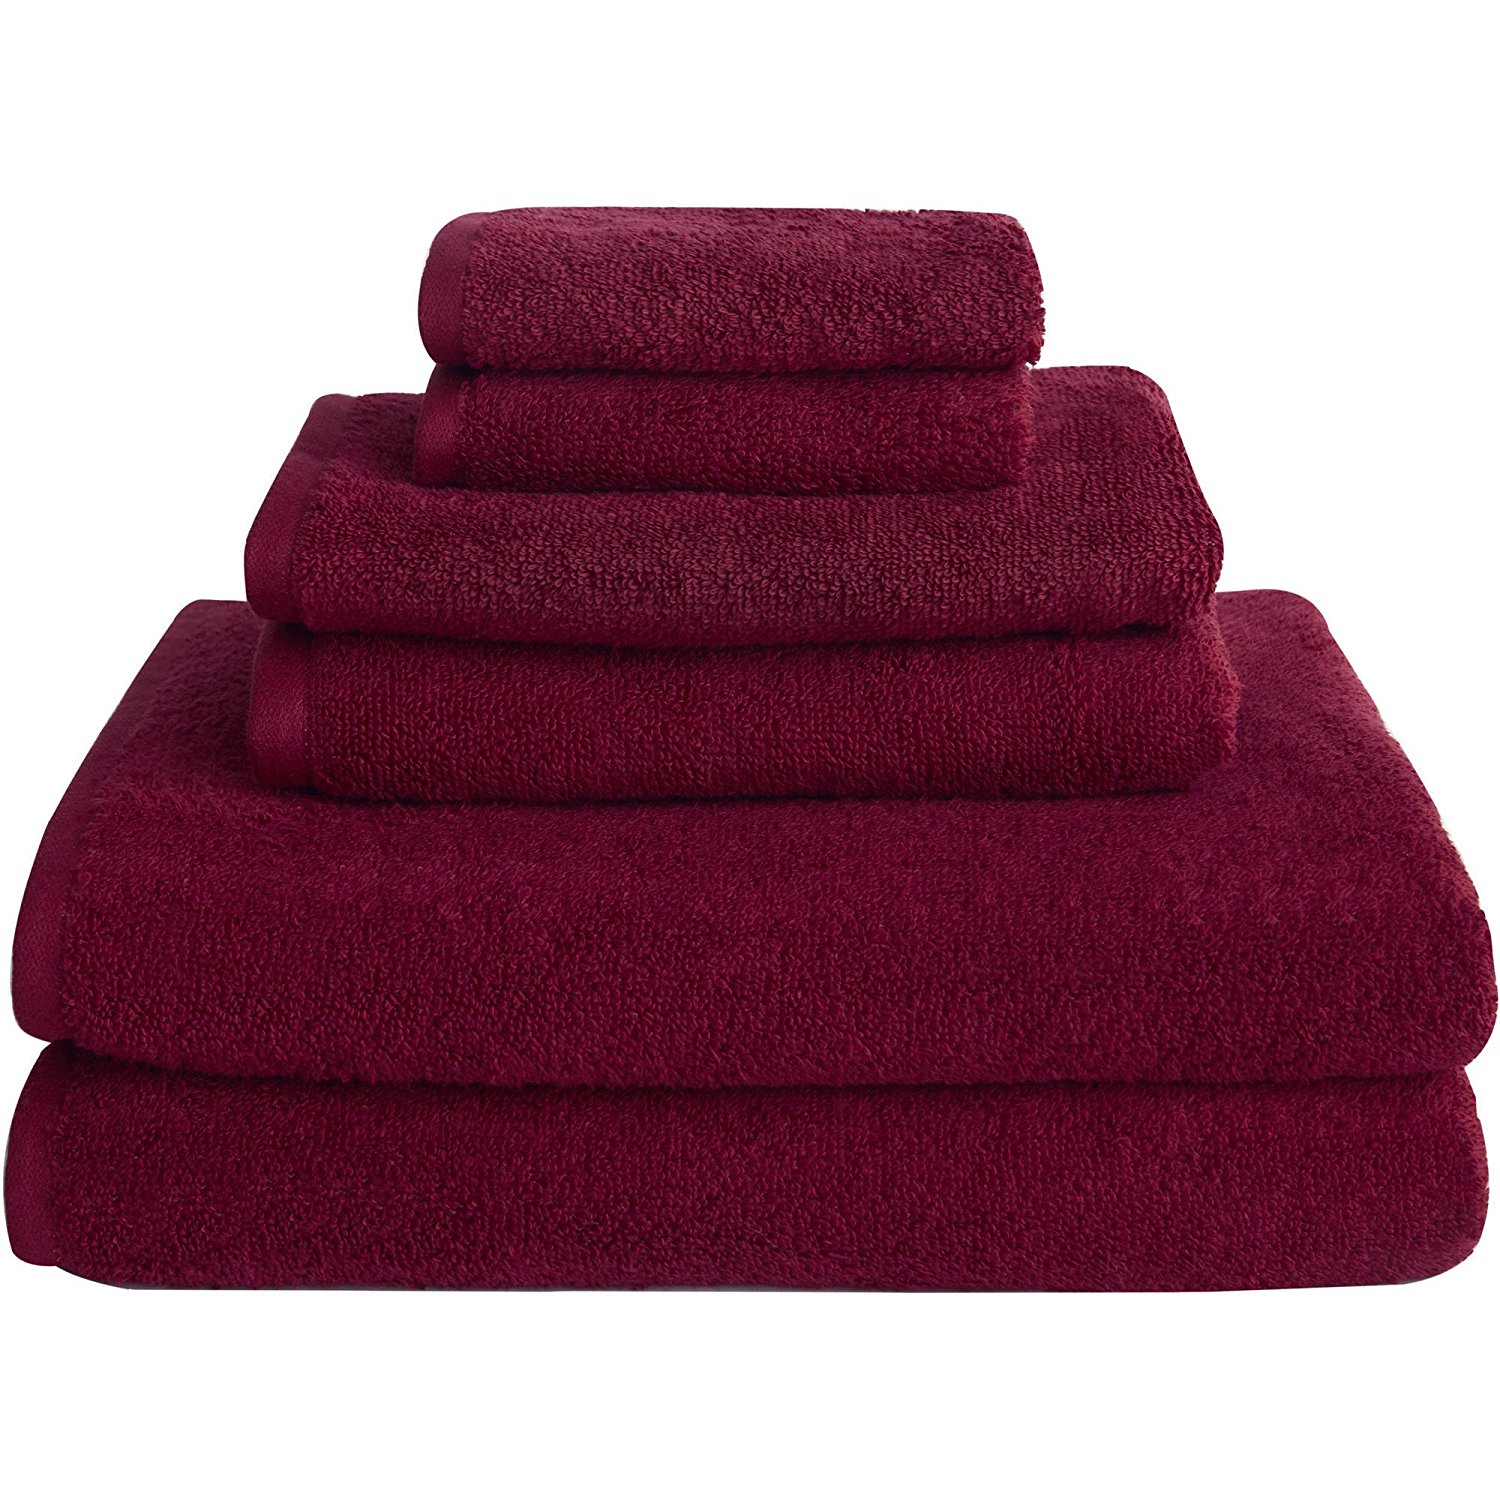 6 Piece Biking Red Solid Color Towel Set With 30 X 54 Inches Bath Towels, Dark Red Soft Cotton Loops Low Twist Yarn Quick Dry Absorbent Comfortable Luxurious Towels, Cotton Blend Polyester